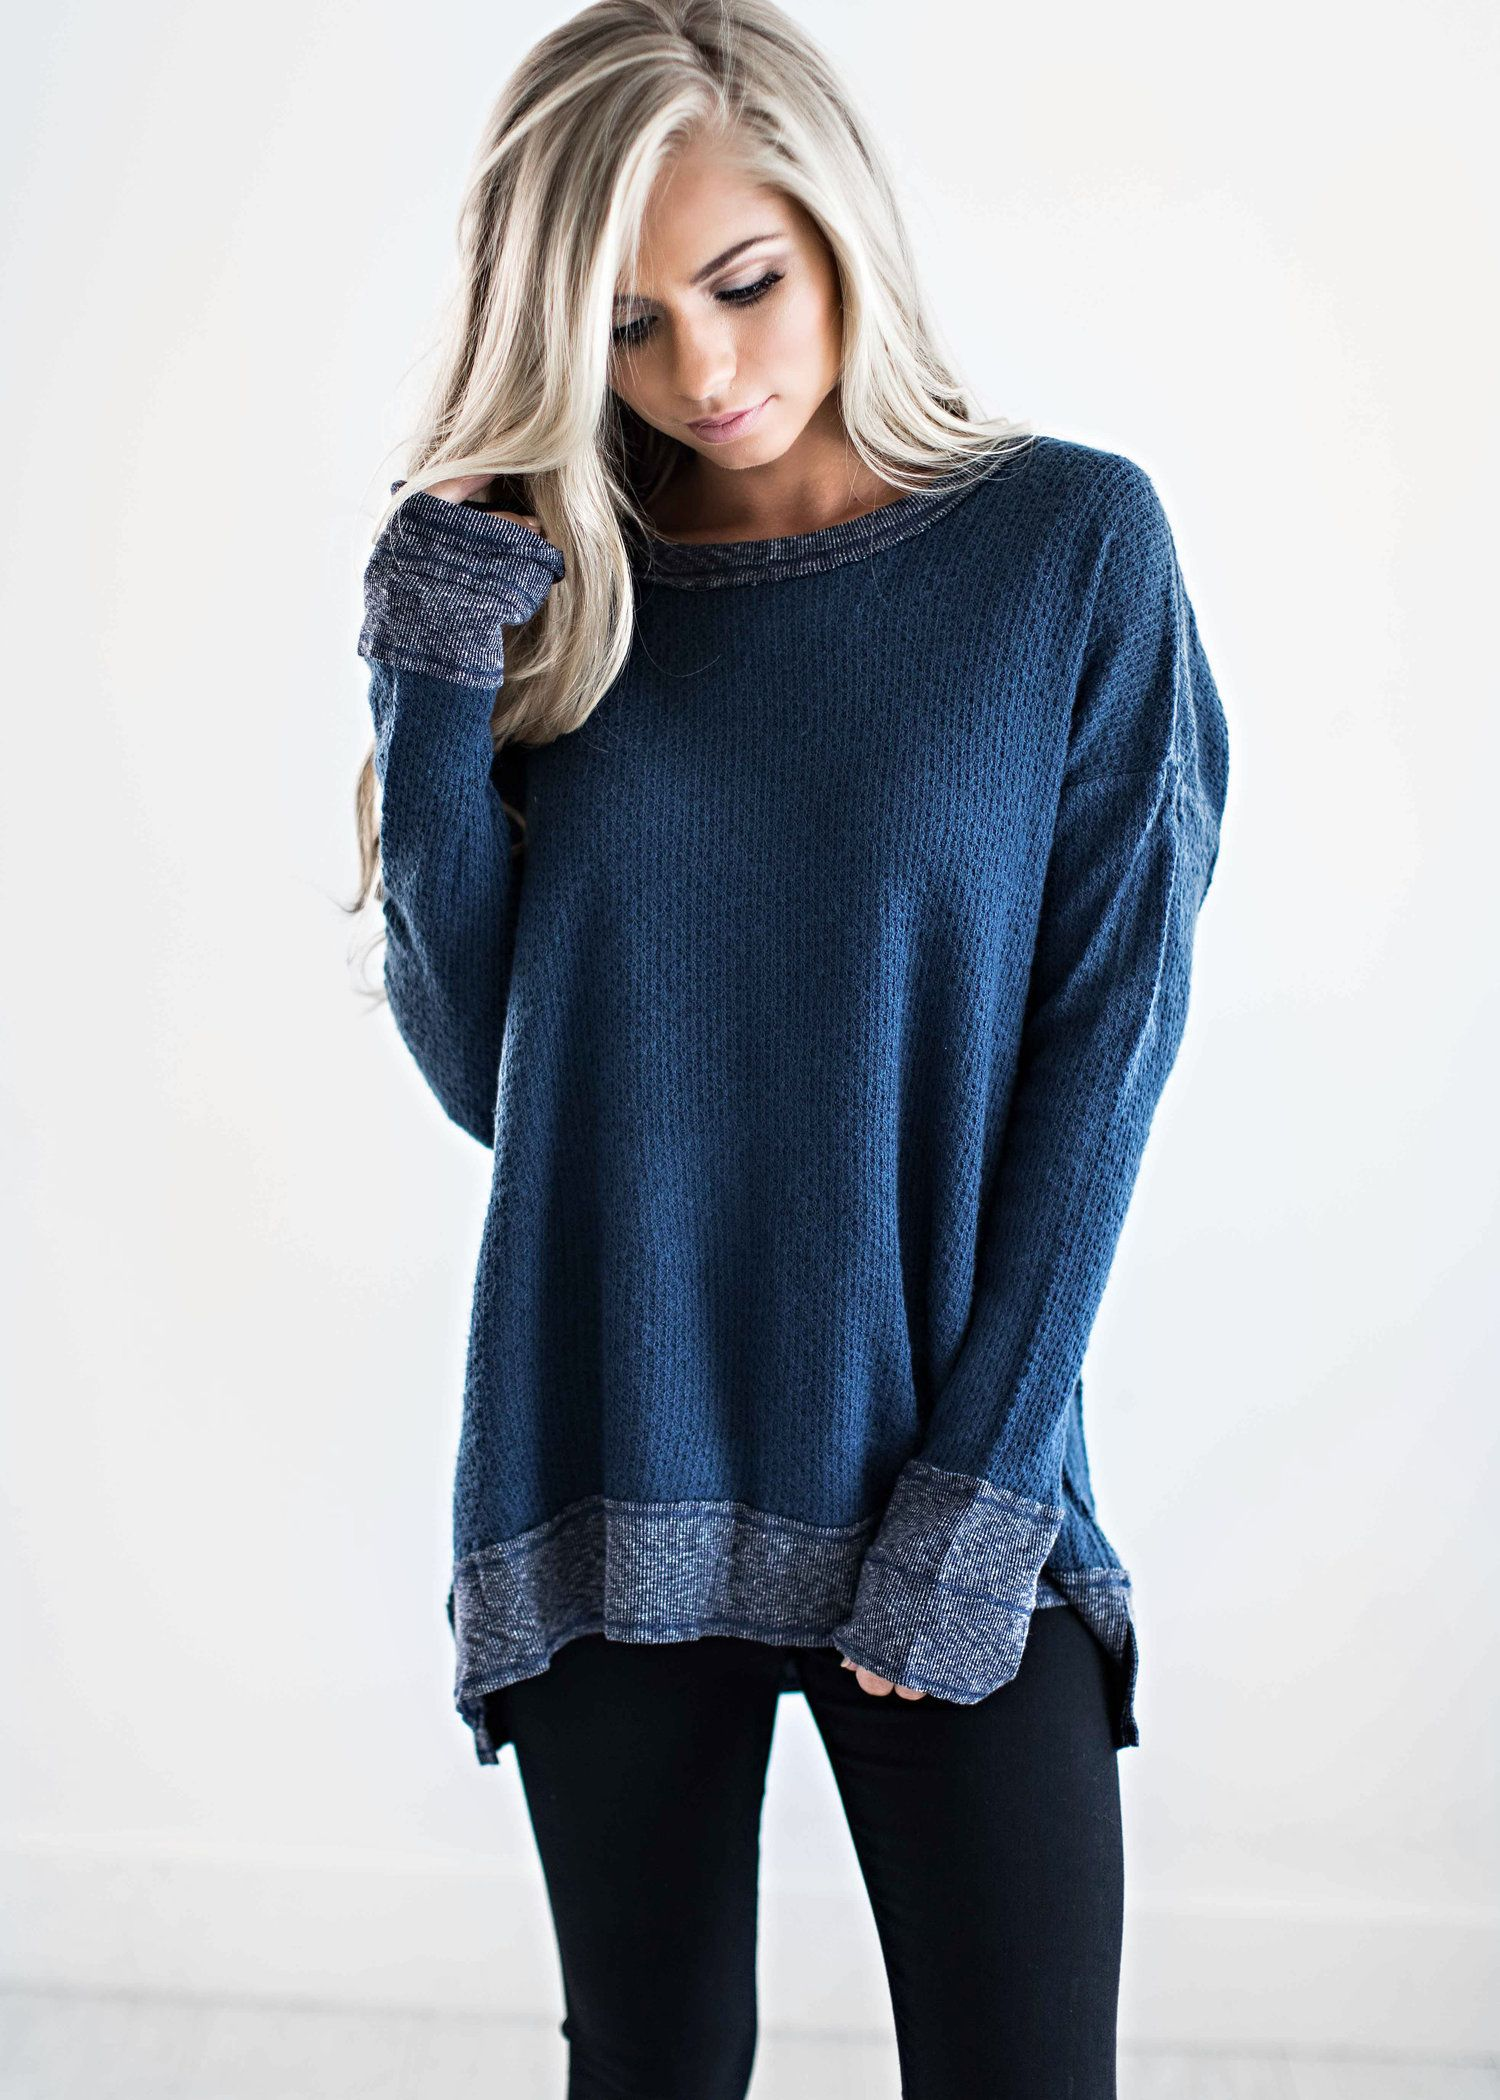 sweaters, blue sweater | Trunk Club | Pinterest | Blue sweaters ...